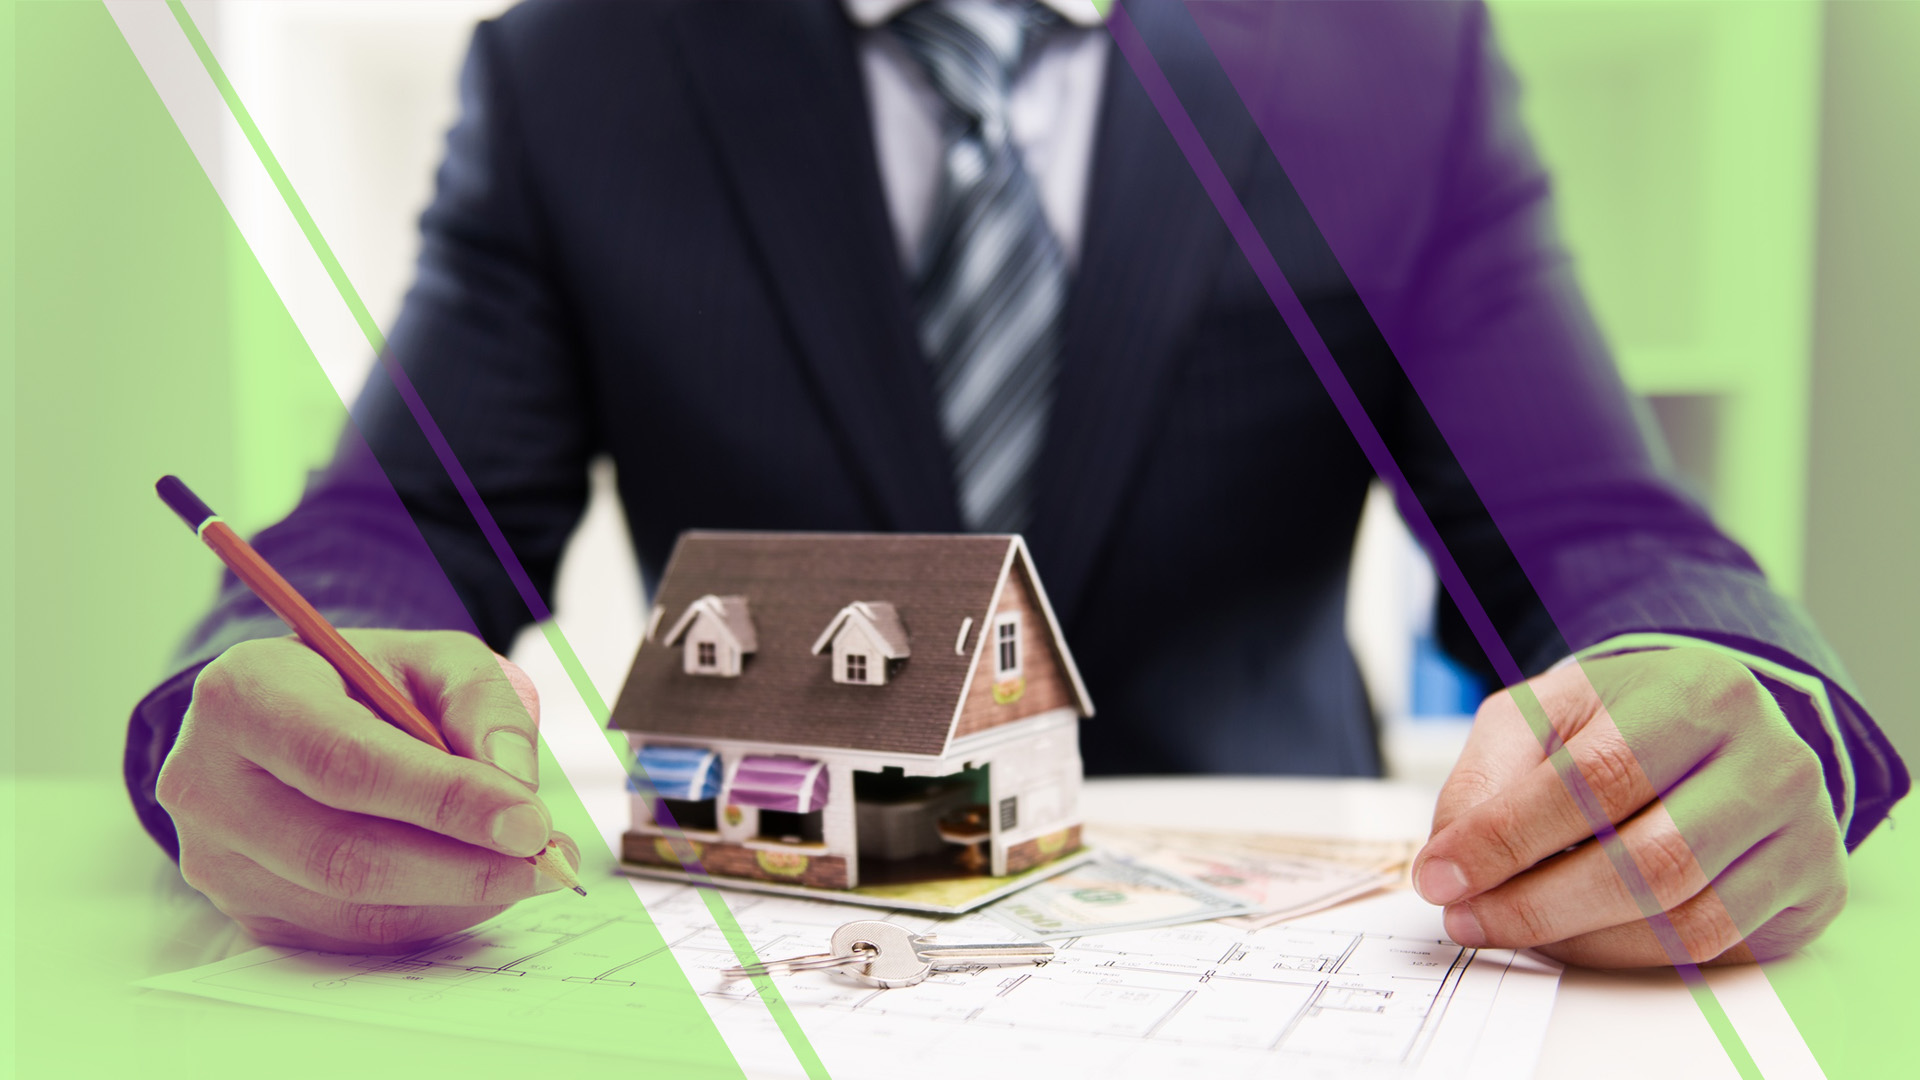 How to appraise my home?